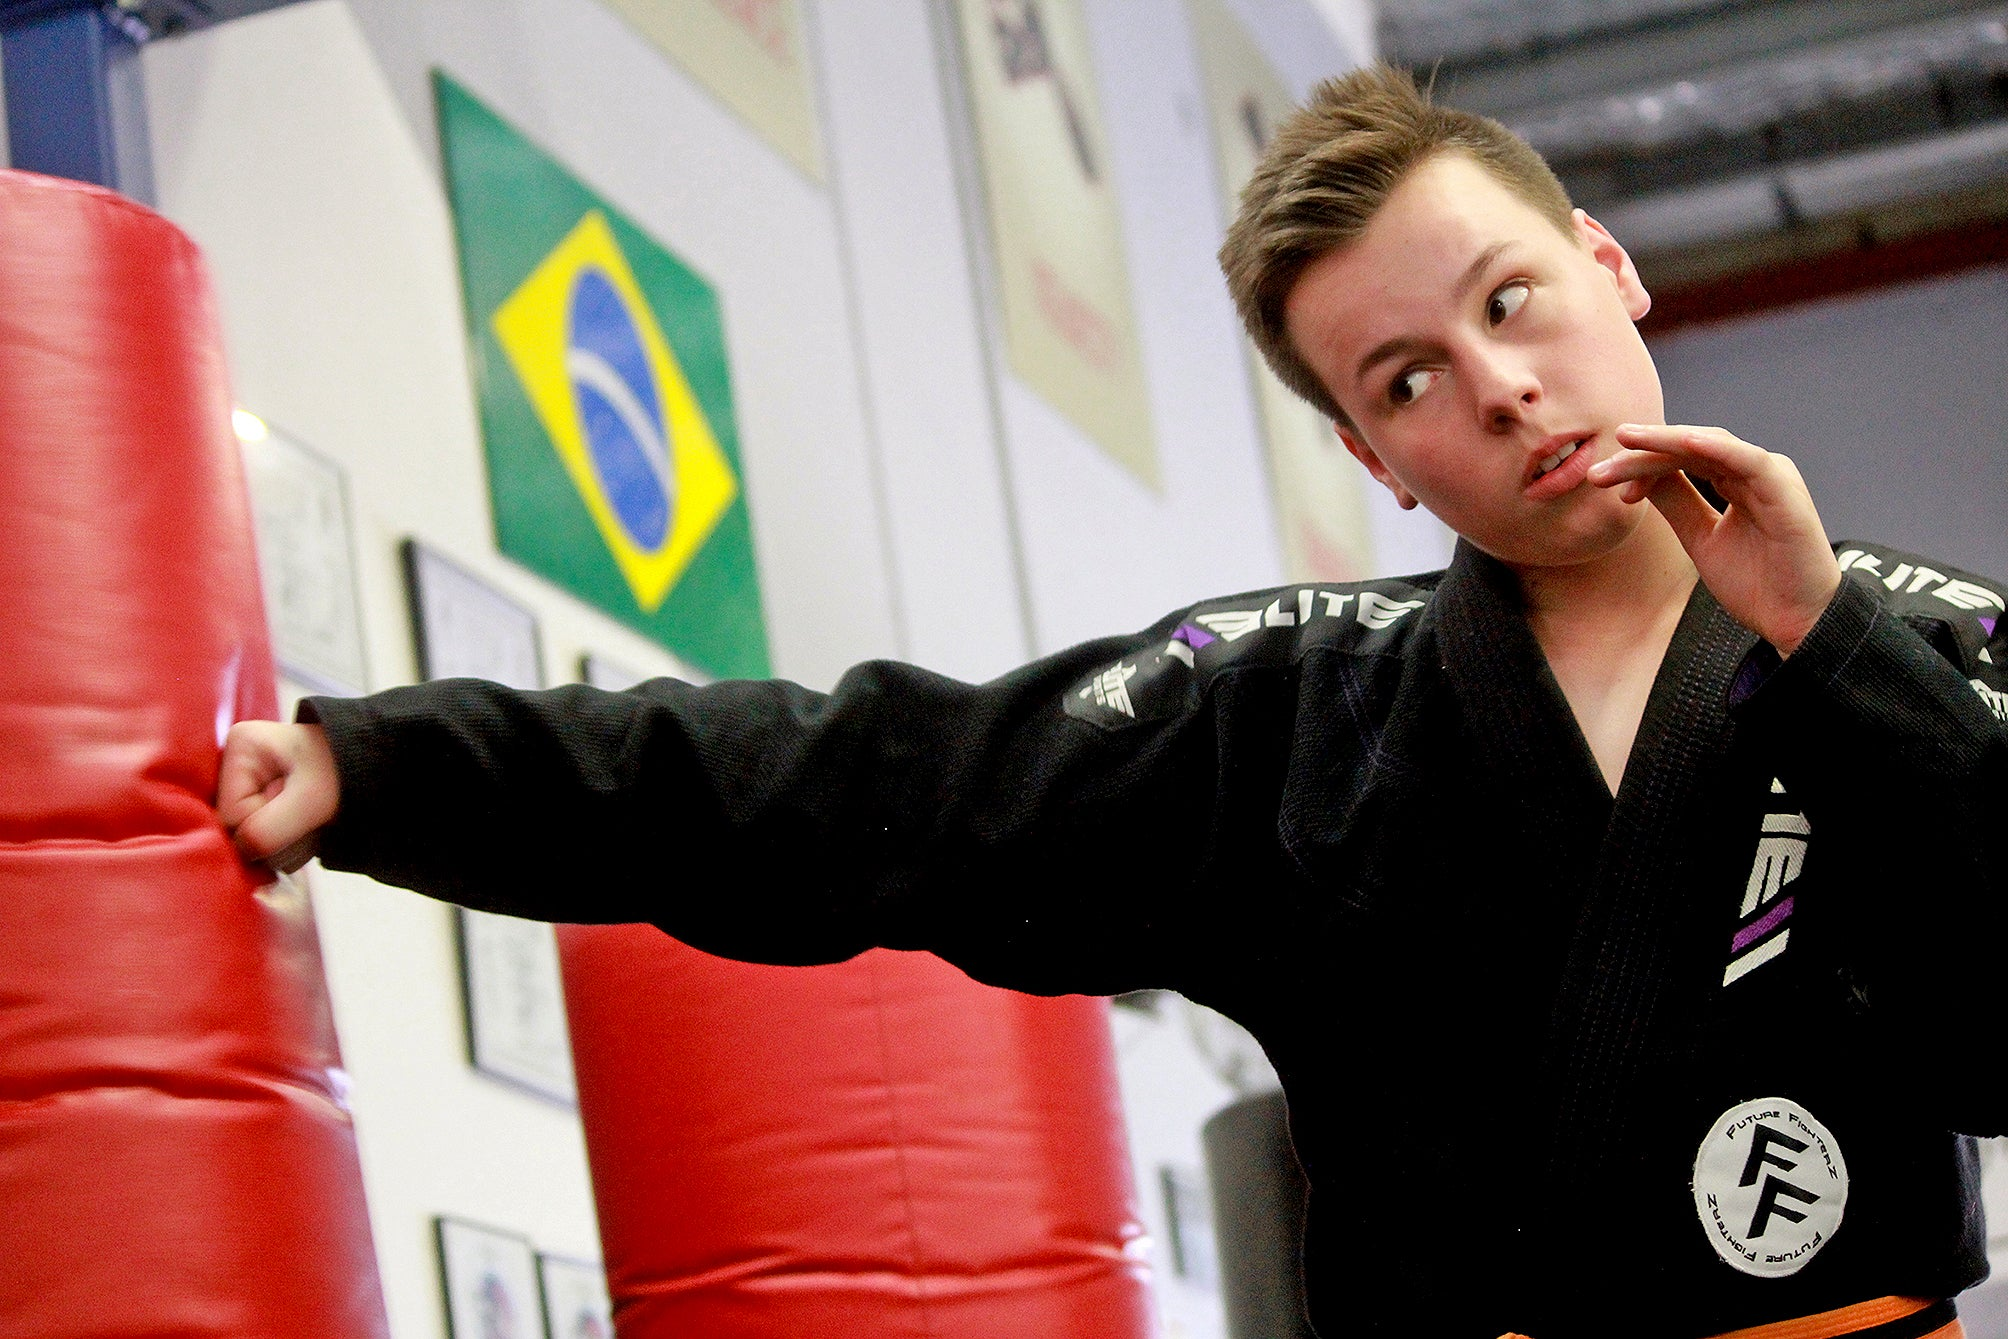 Elite Sports Team Elite Bjj Fighter Jack O'Toole  Image2